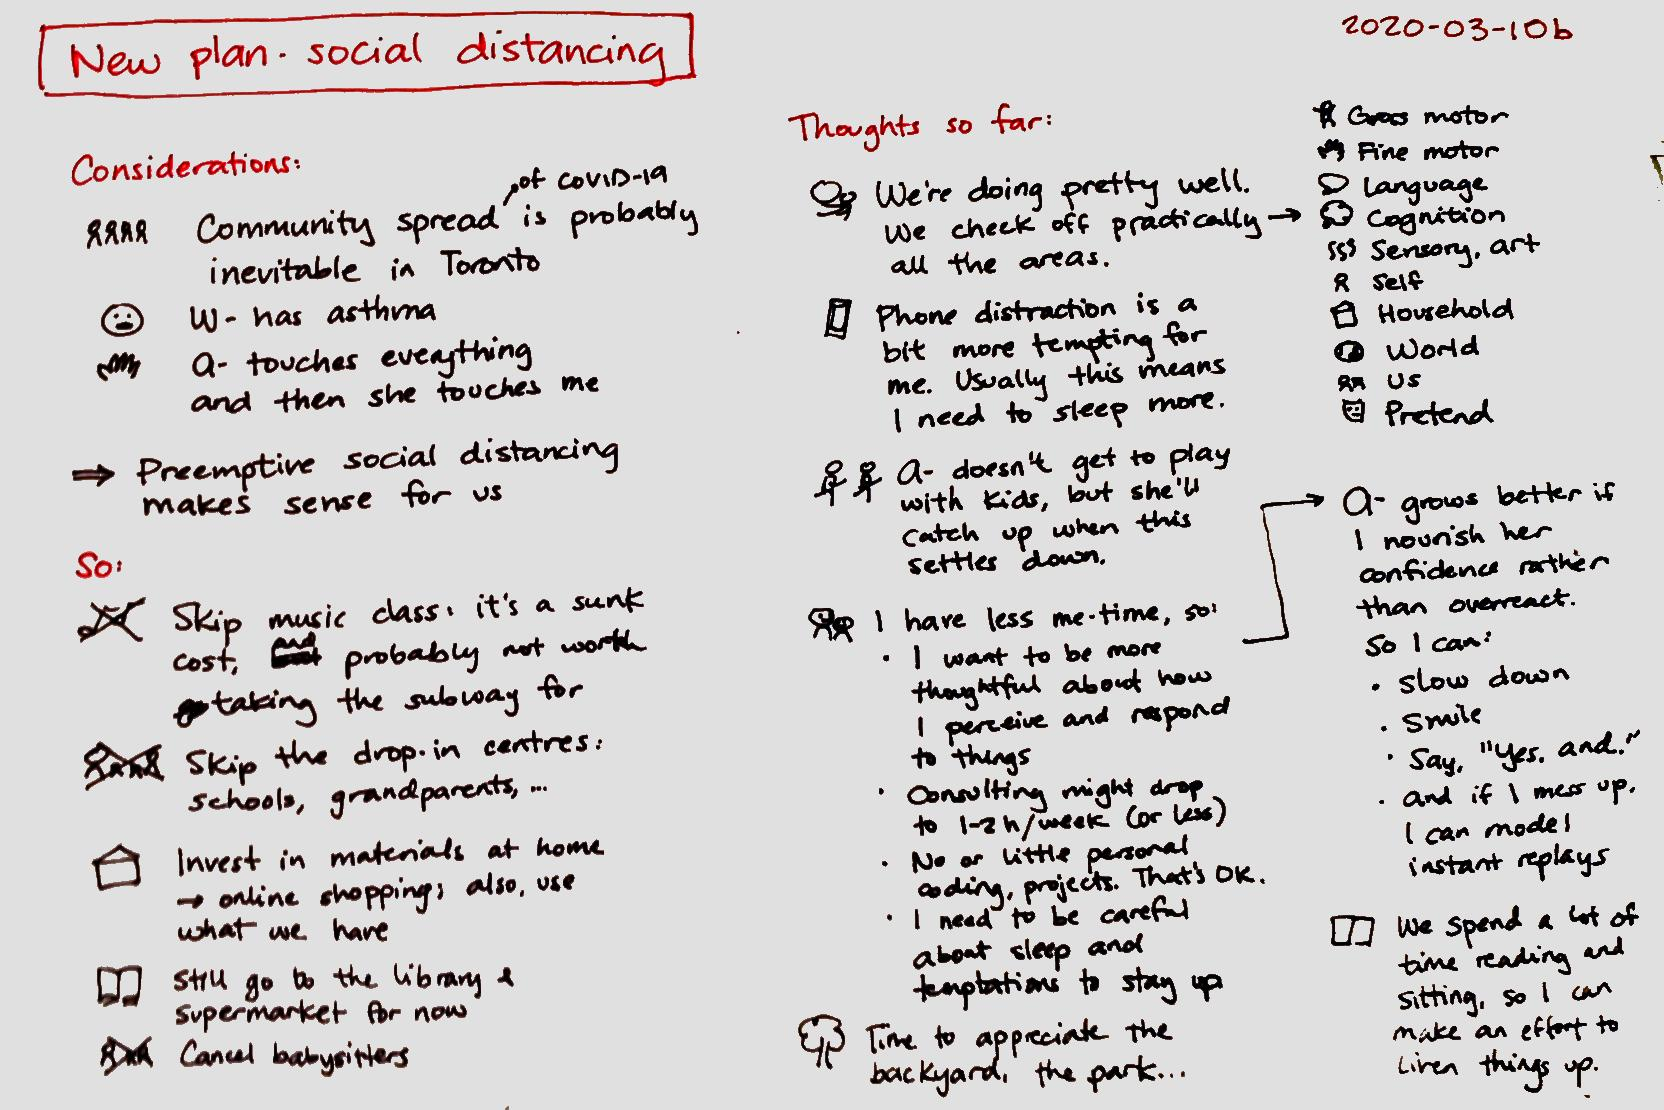 2020-03-10 New plan - social distancing #covid.png